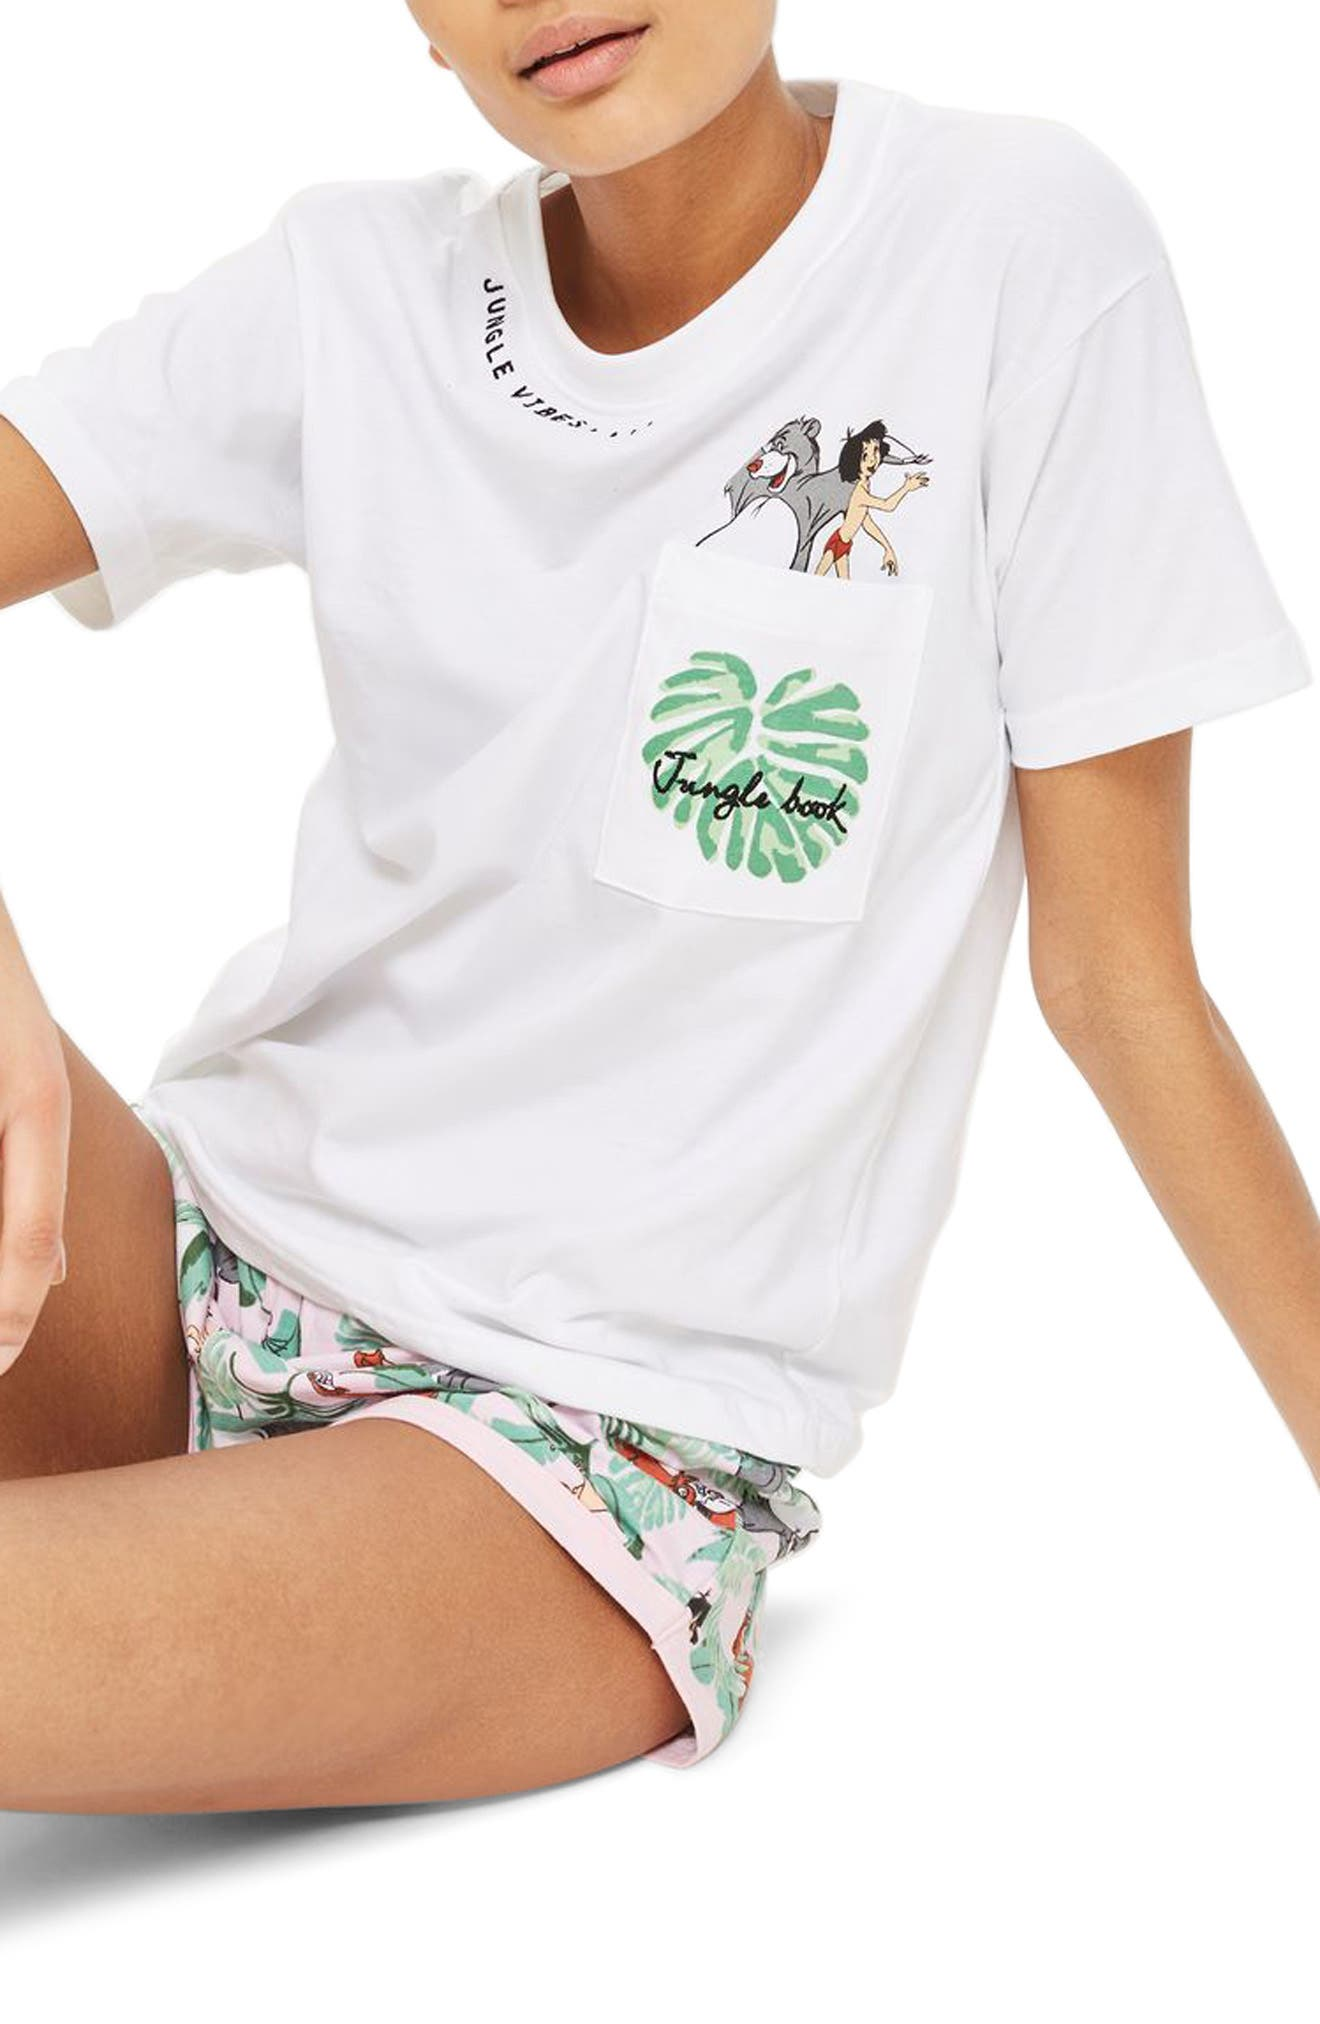 Disney<sup>®</sup> Jungle Book Short Pajamas,                         Main,                         color, White Multi